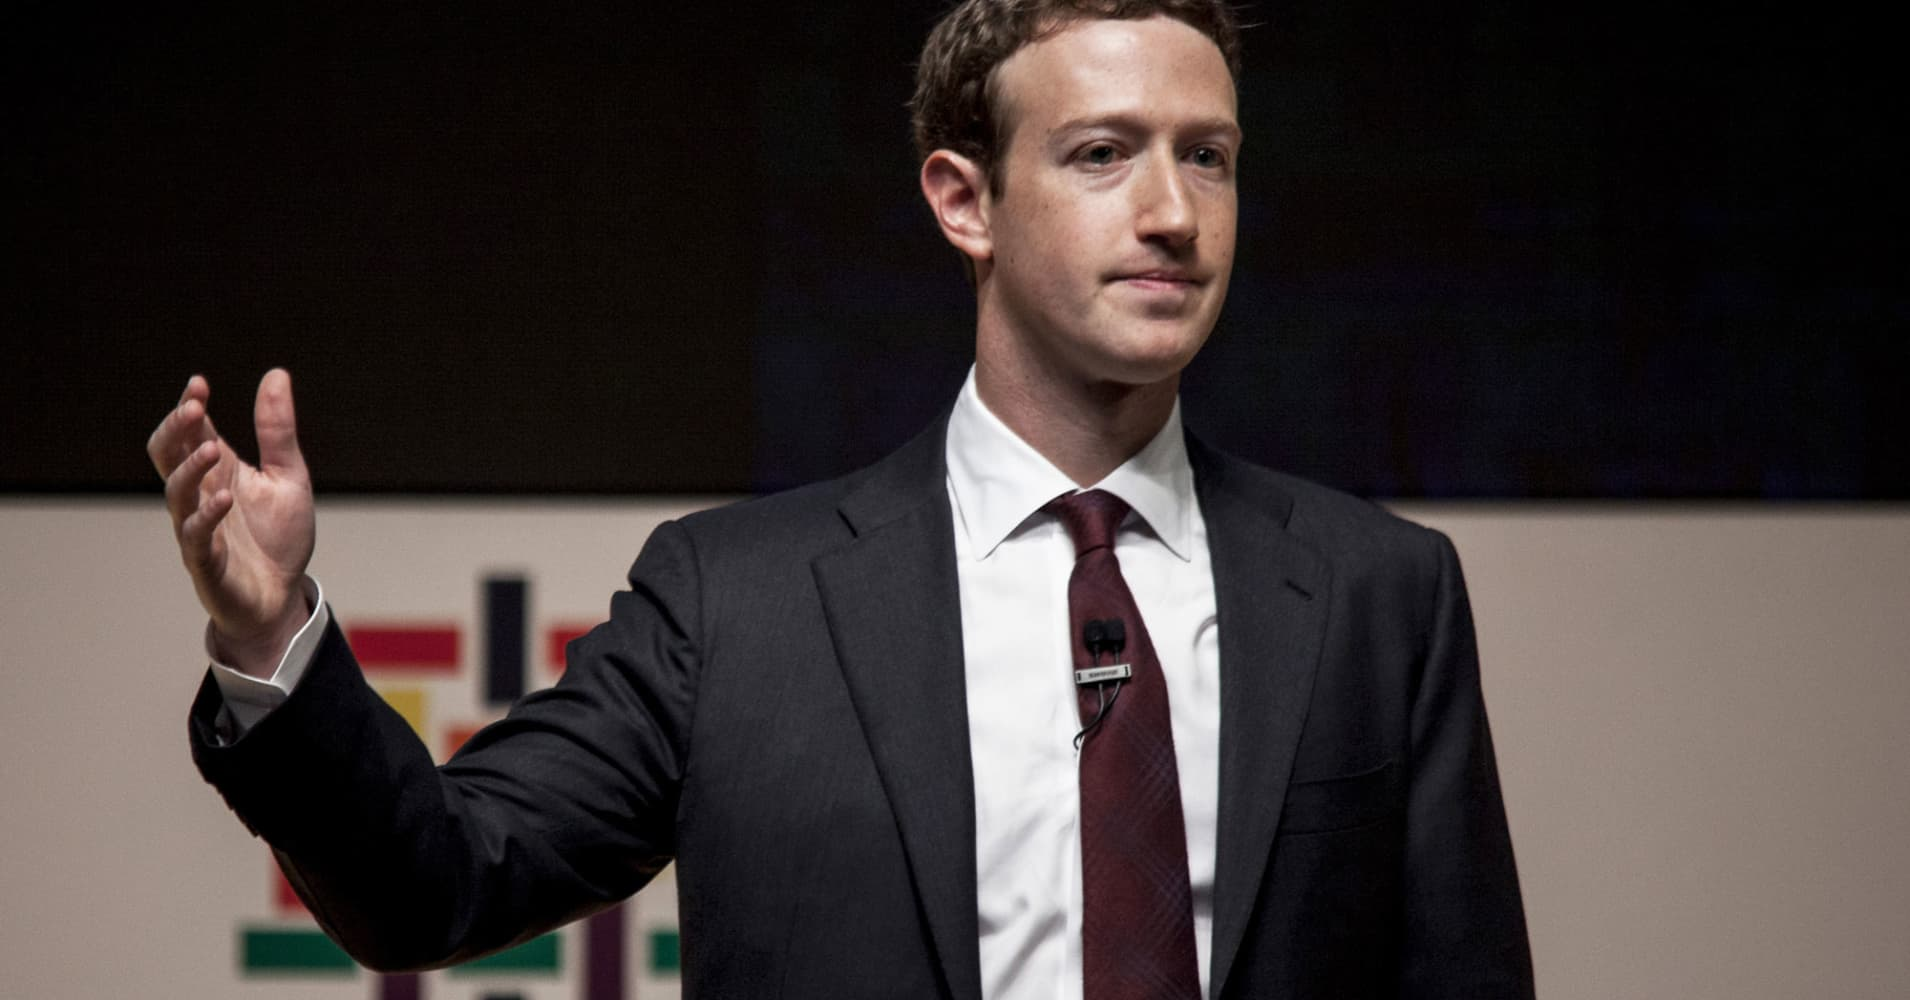 Facebook will begin taking down fake news intended to encourage violence